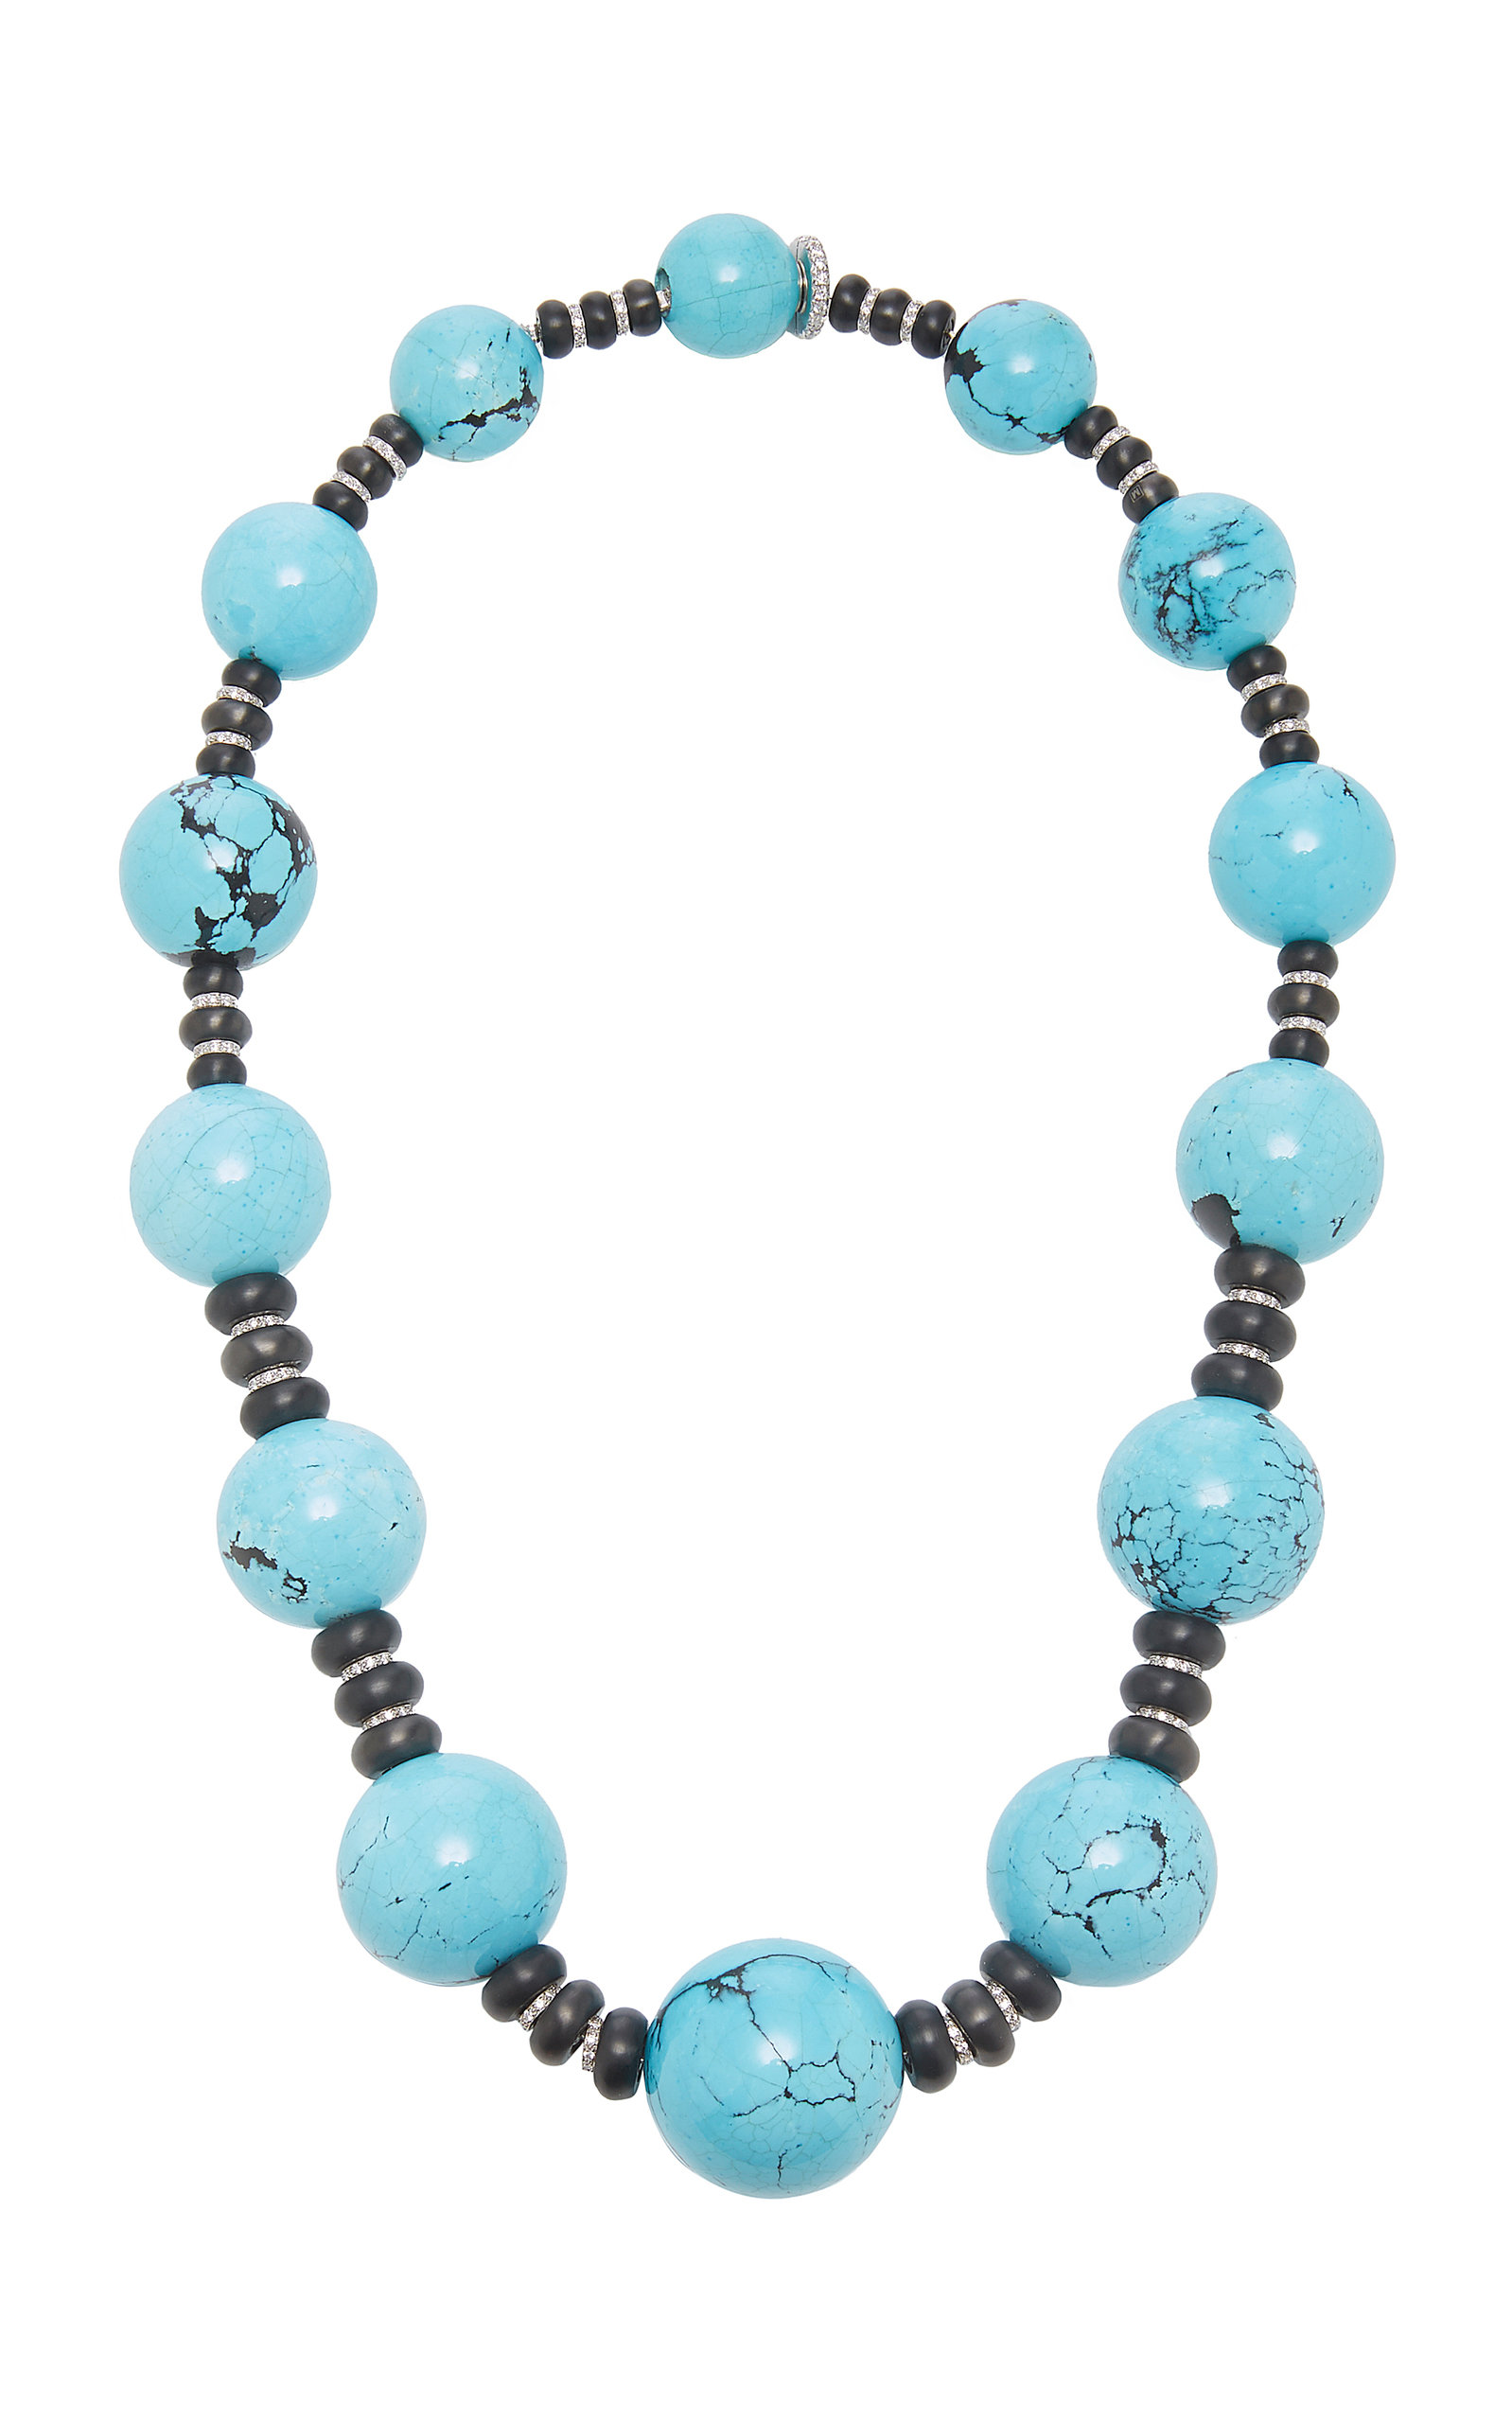 SABBADINI White Gold Turquoise And Diamond Necklace in Blue